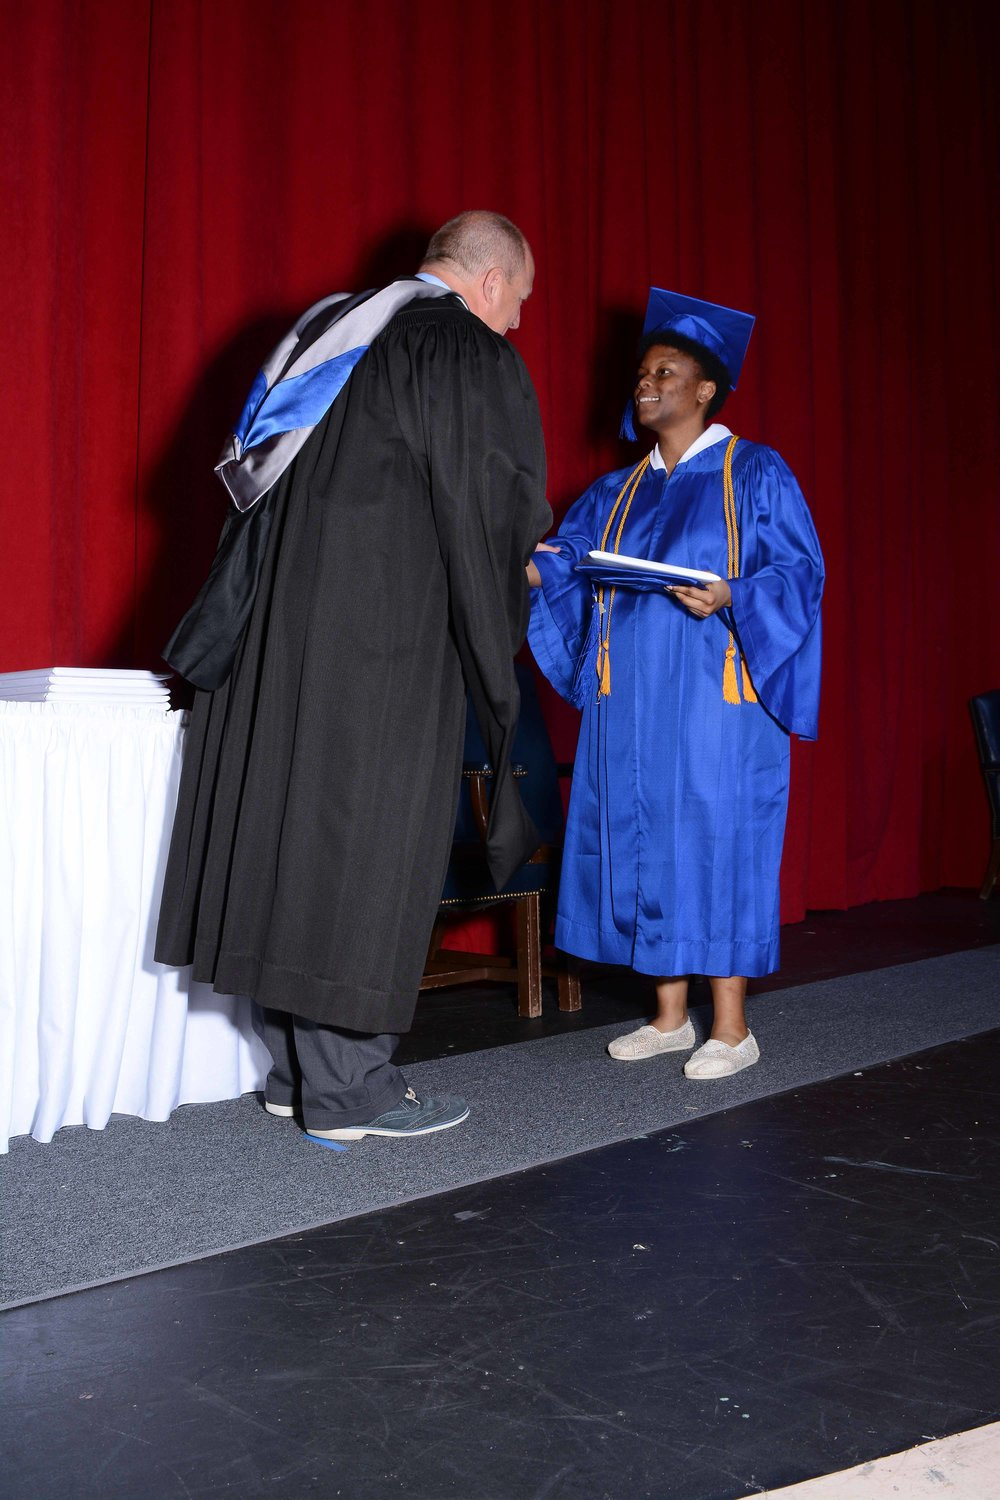 May14 Commencement172.jpg